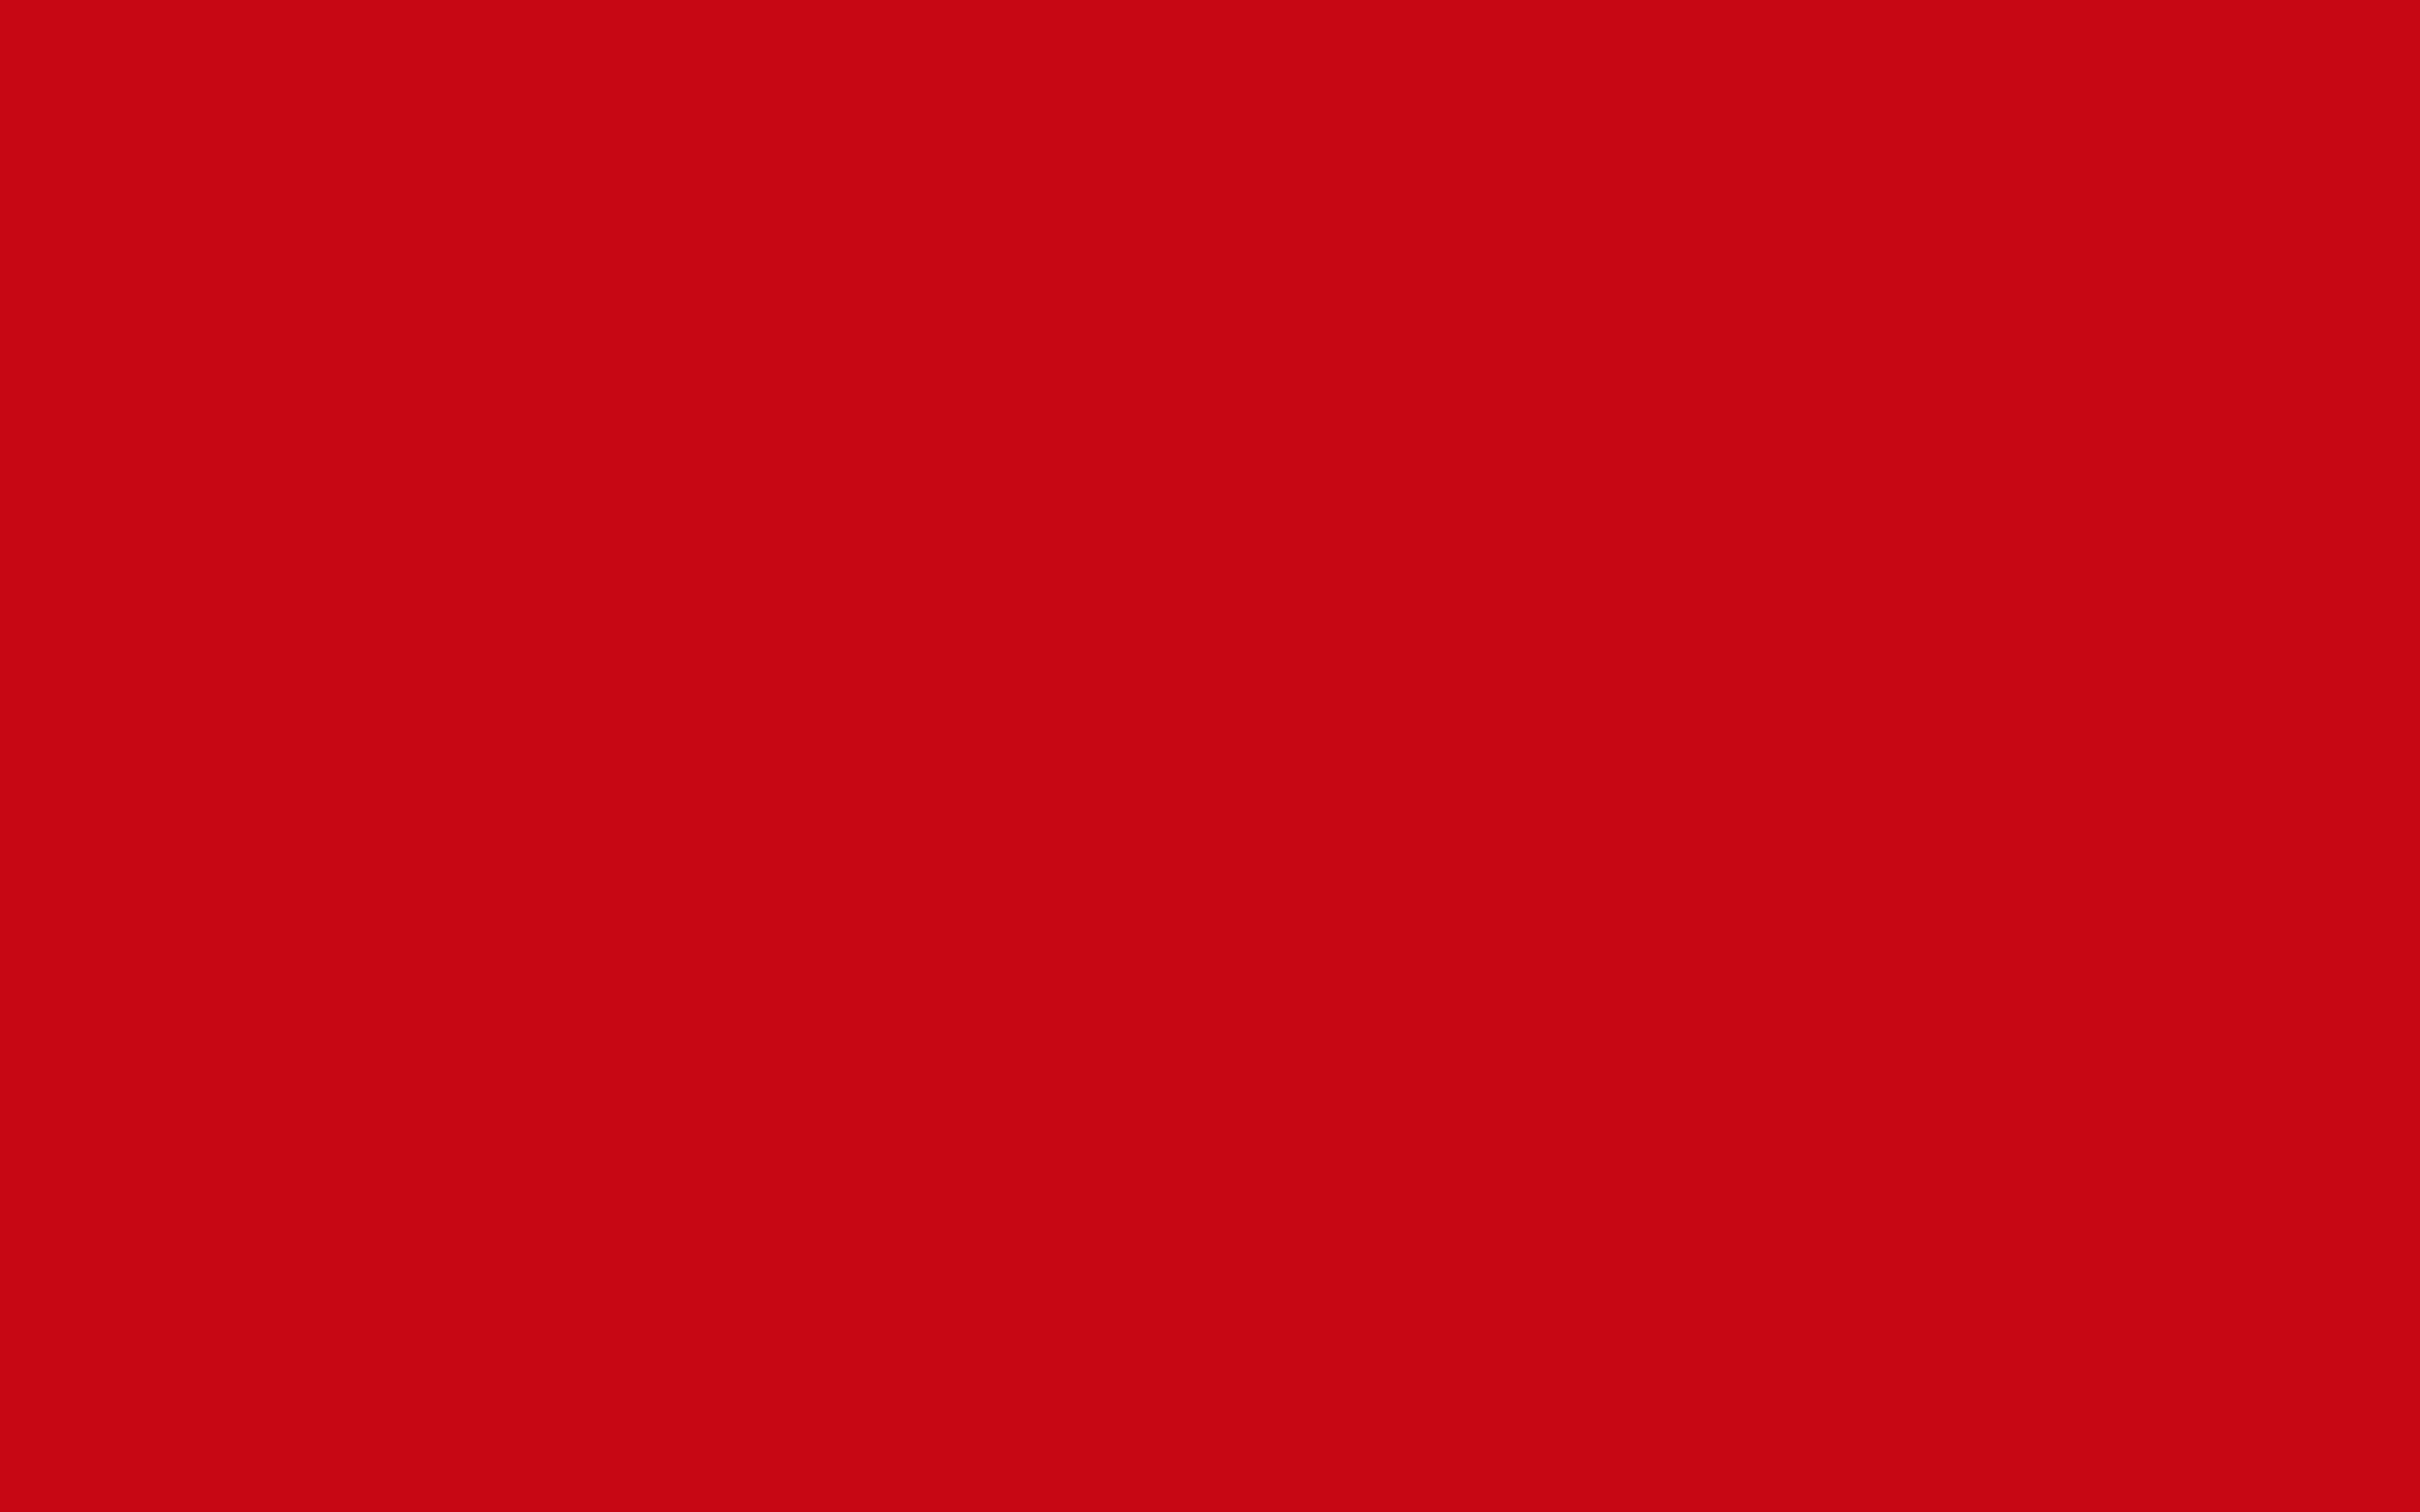 2560x1600 Venetian Red Solid Color Background